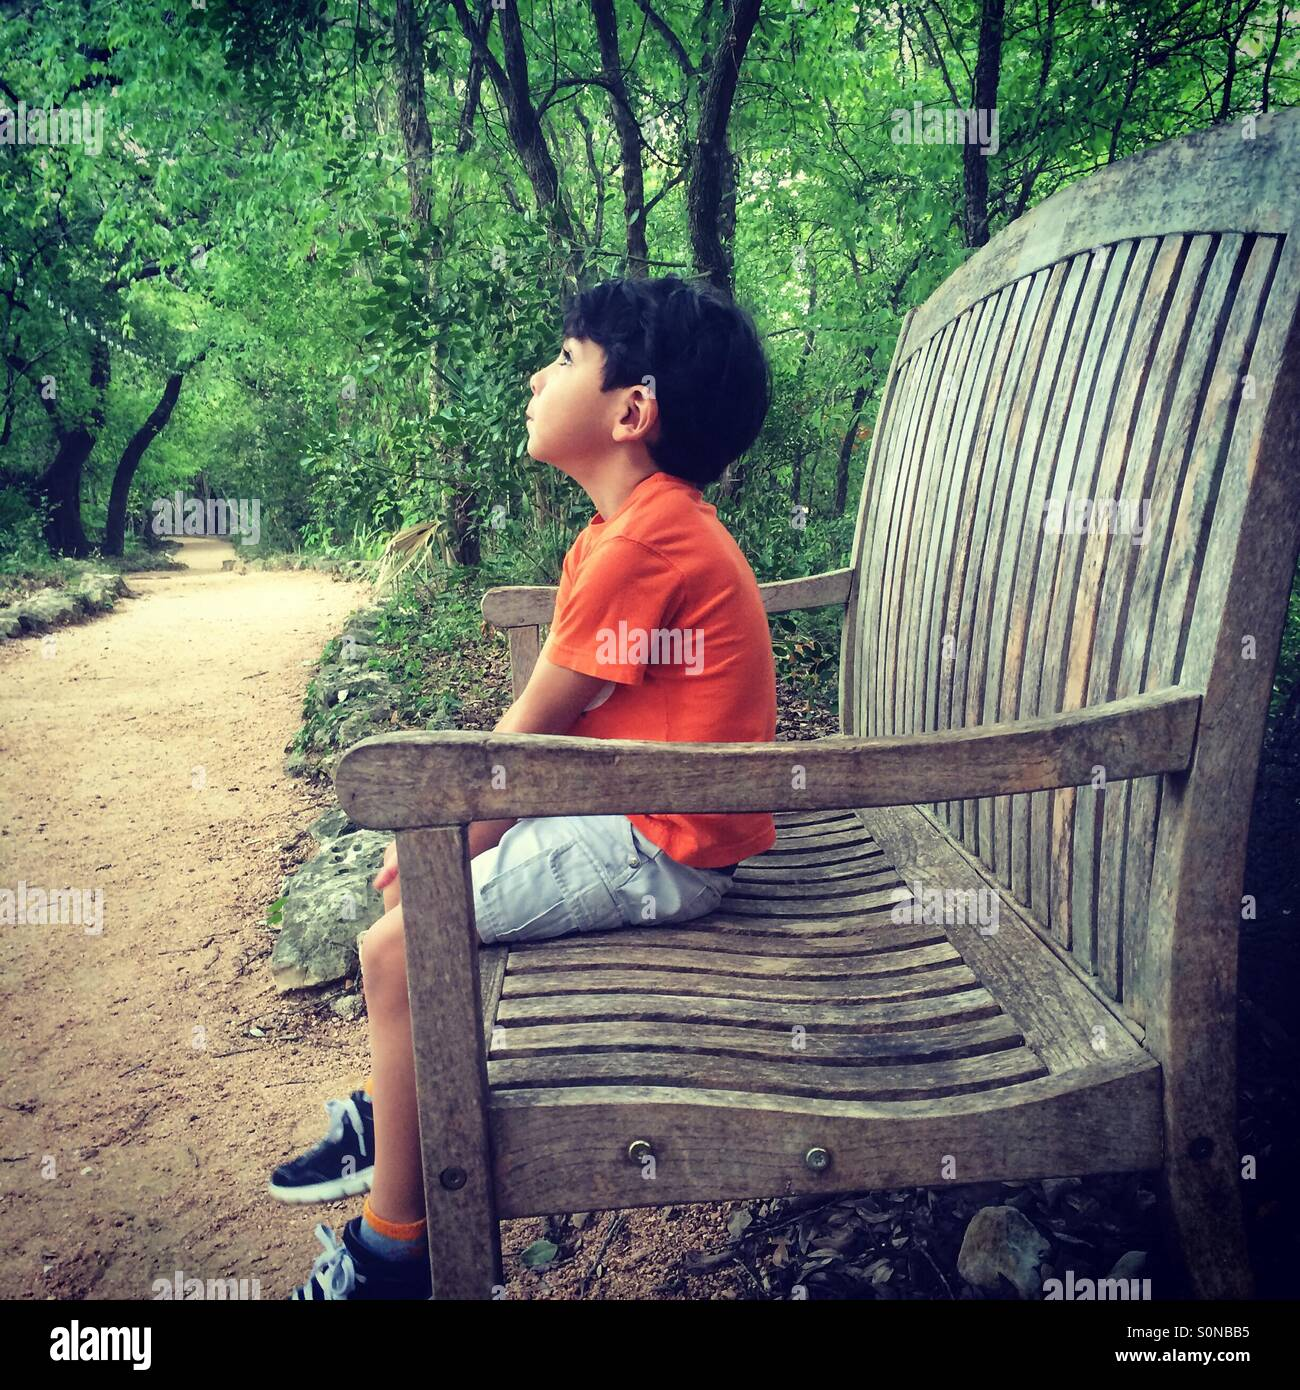 Boy on a bench - Stock Image